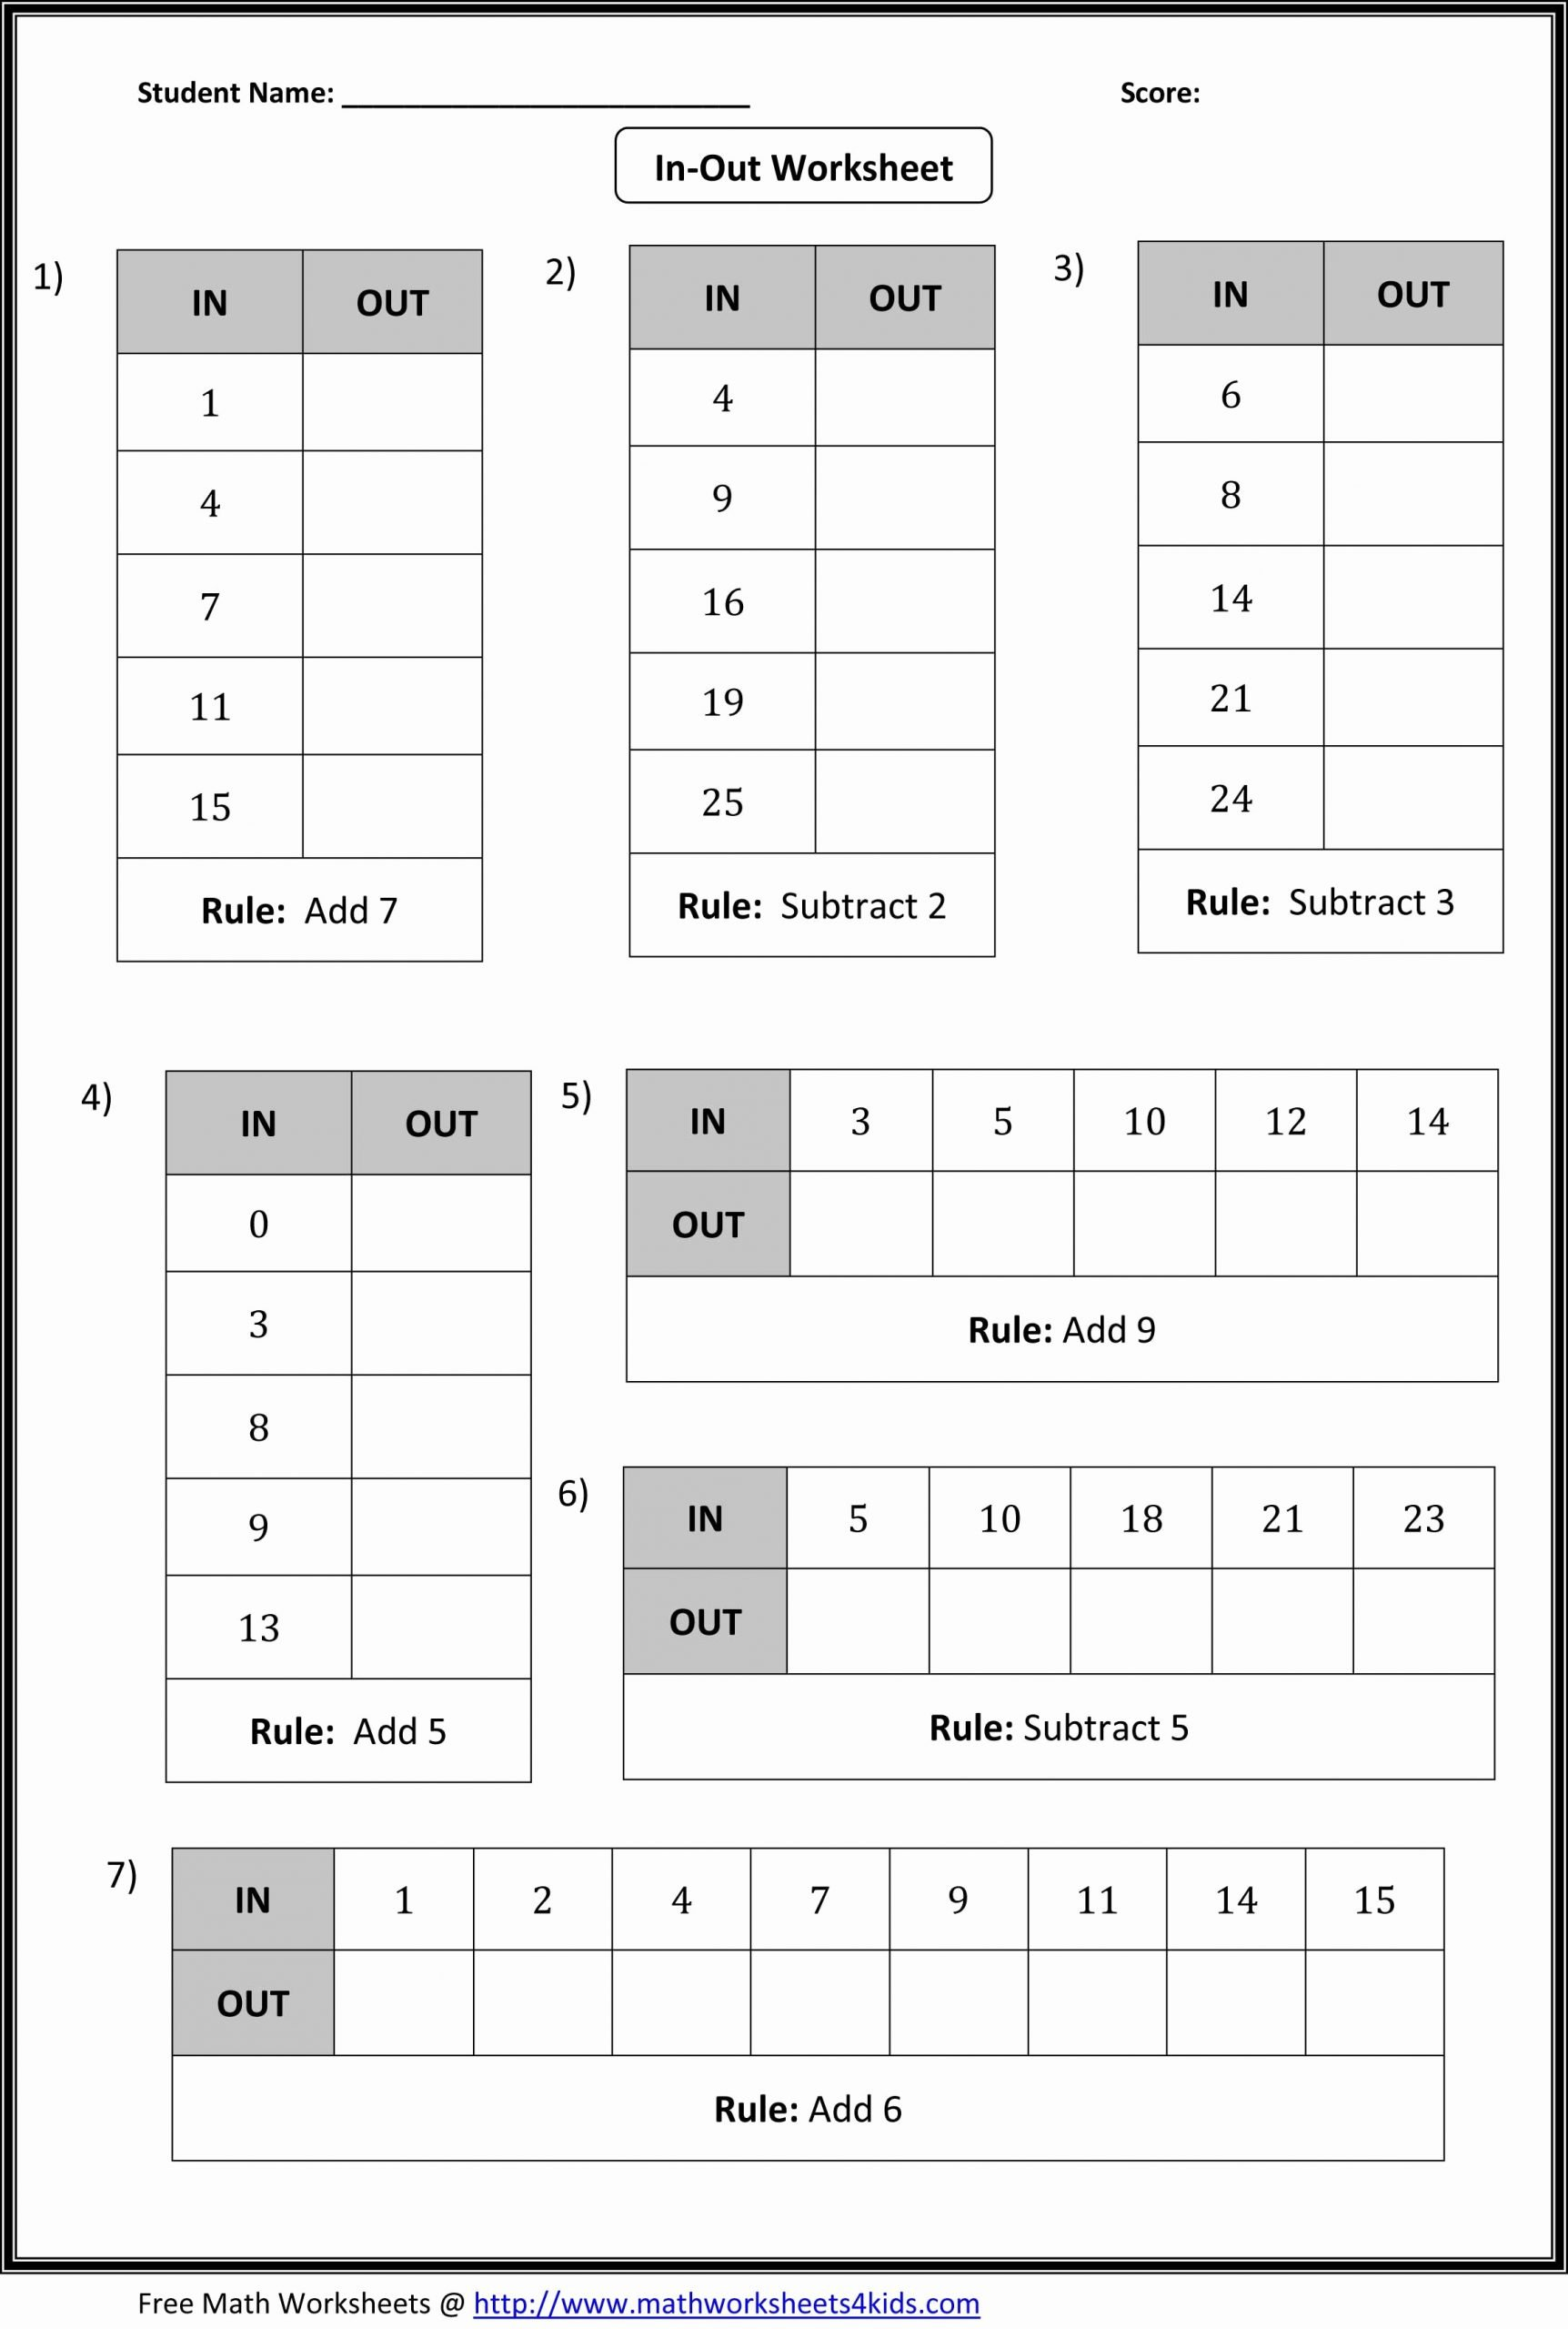 Patterns In Multiplication Worksheets Awesome In Out Boxes Worksheets Include Addition Subtraction